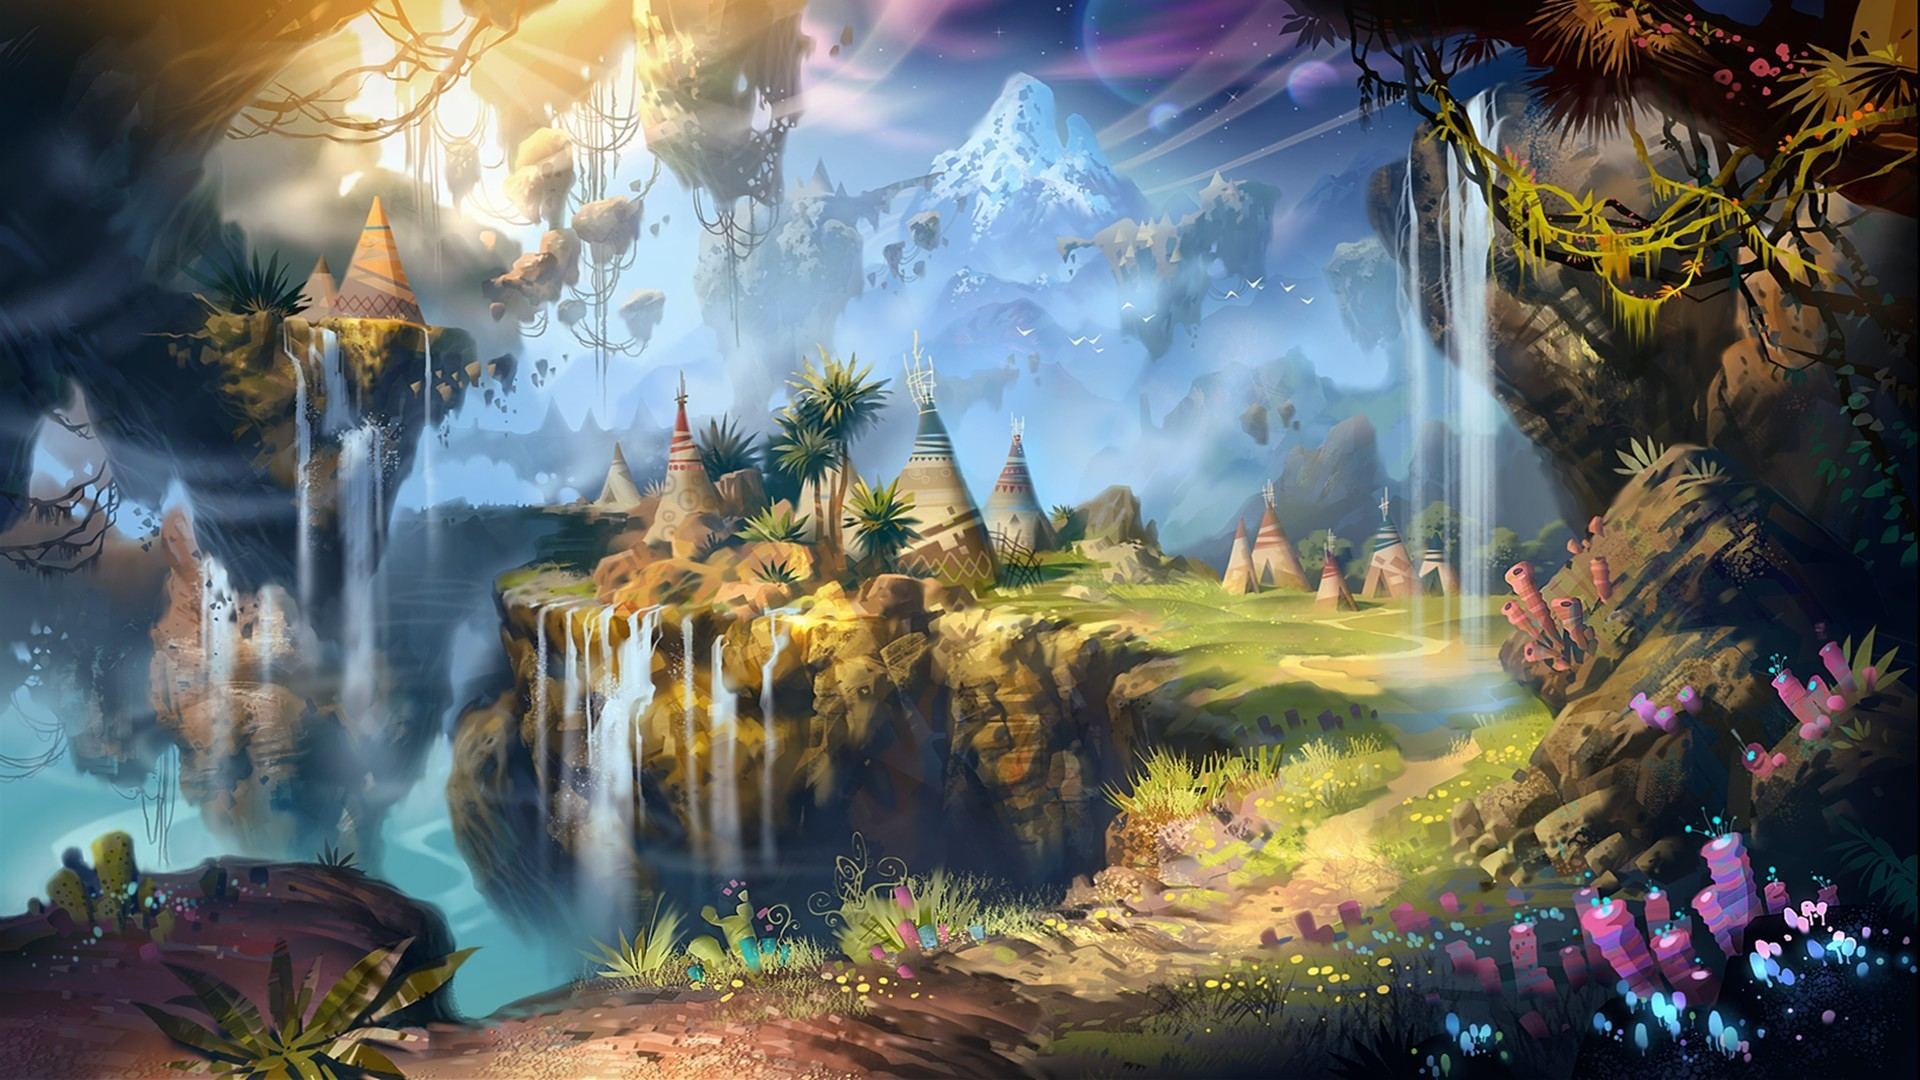 1920x1080 Fantasy Landscape Wallpaper   Windows